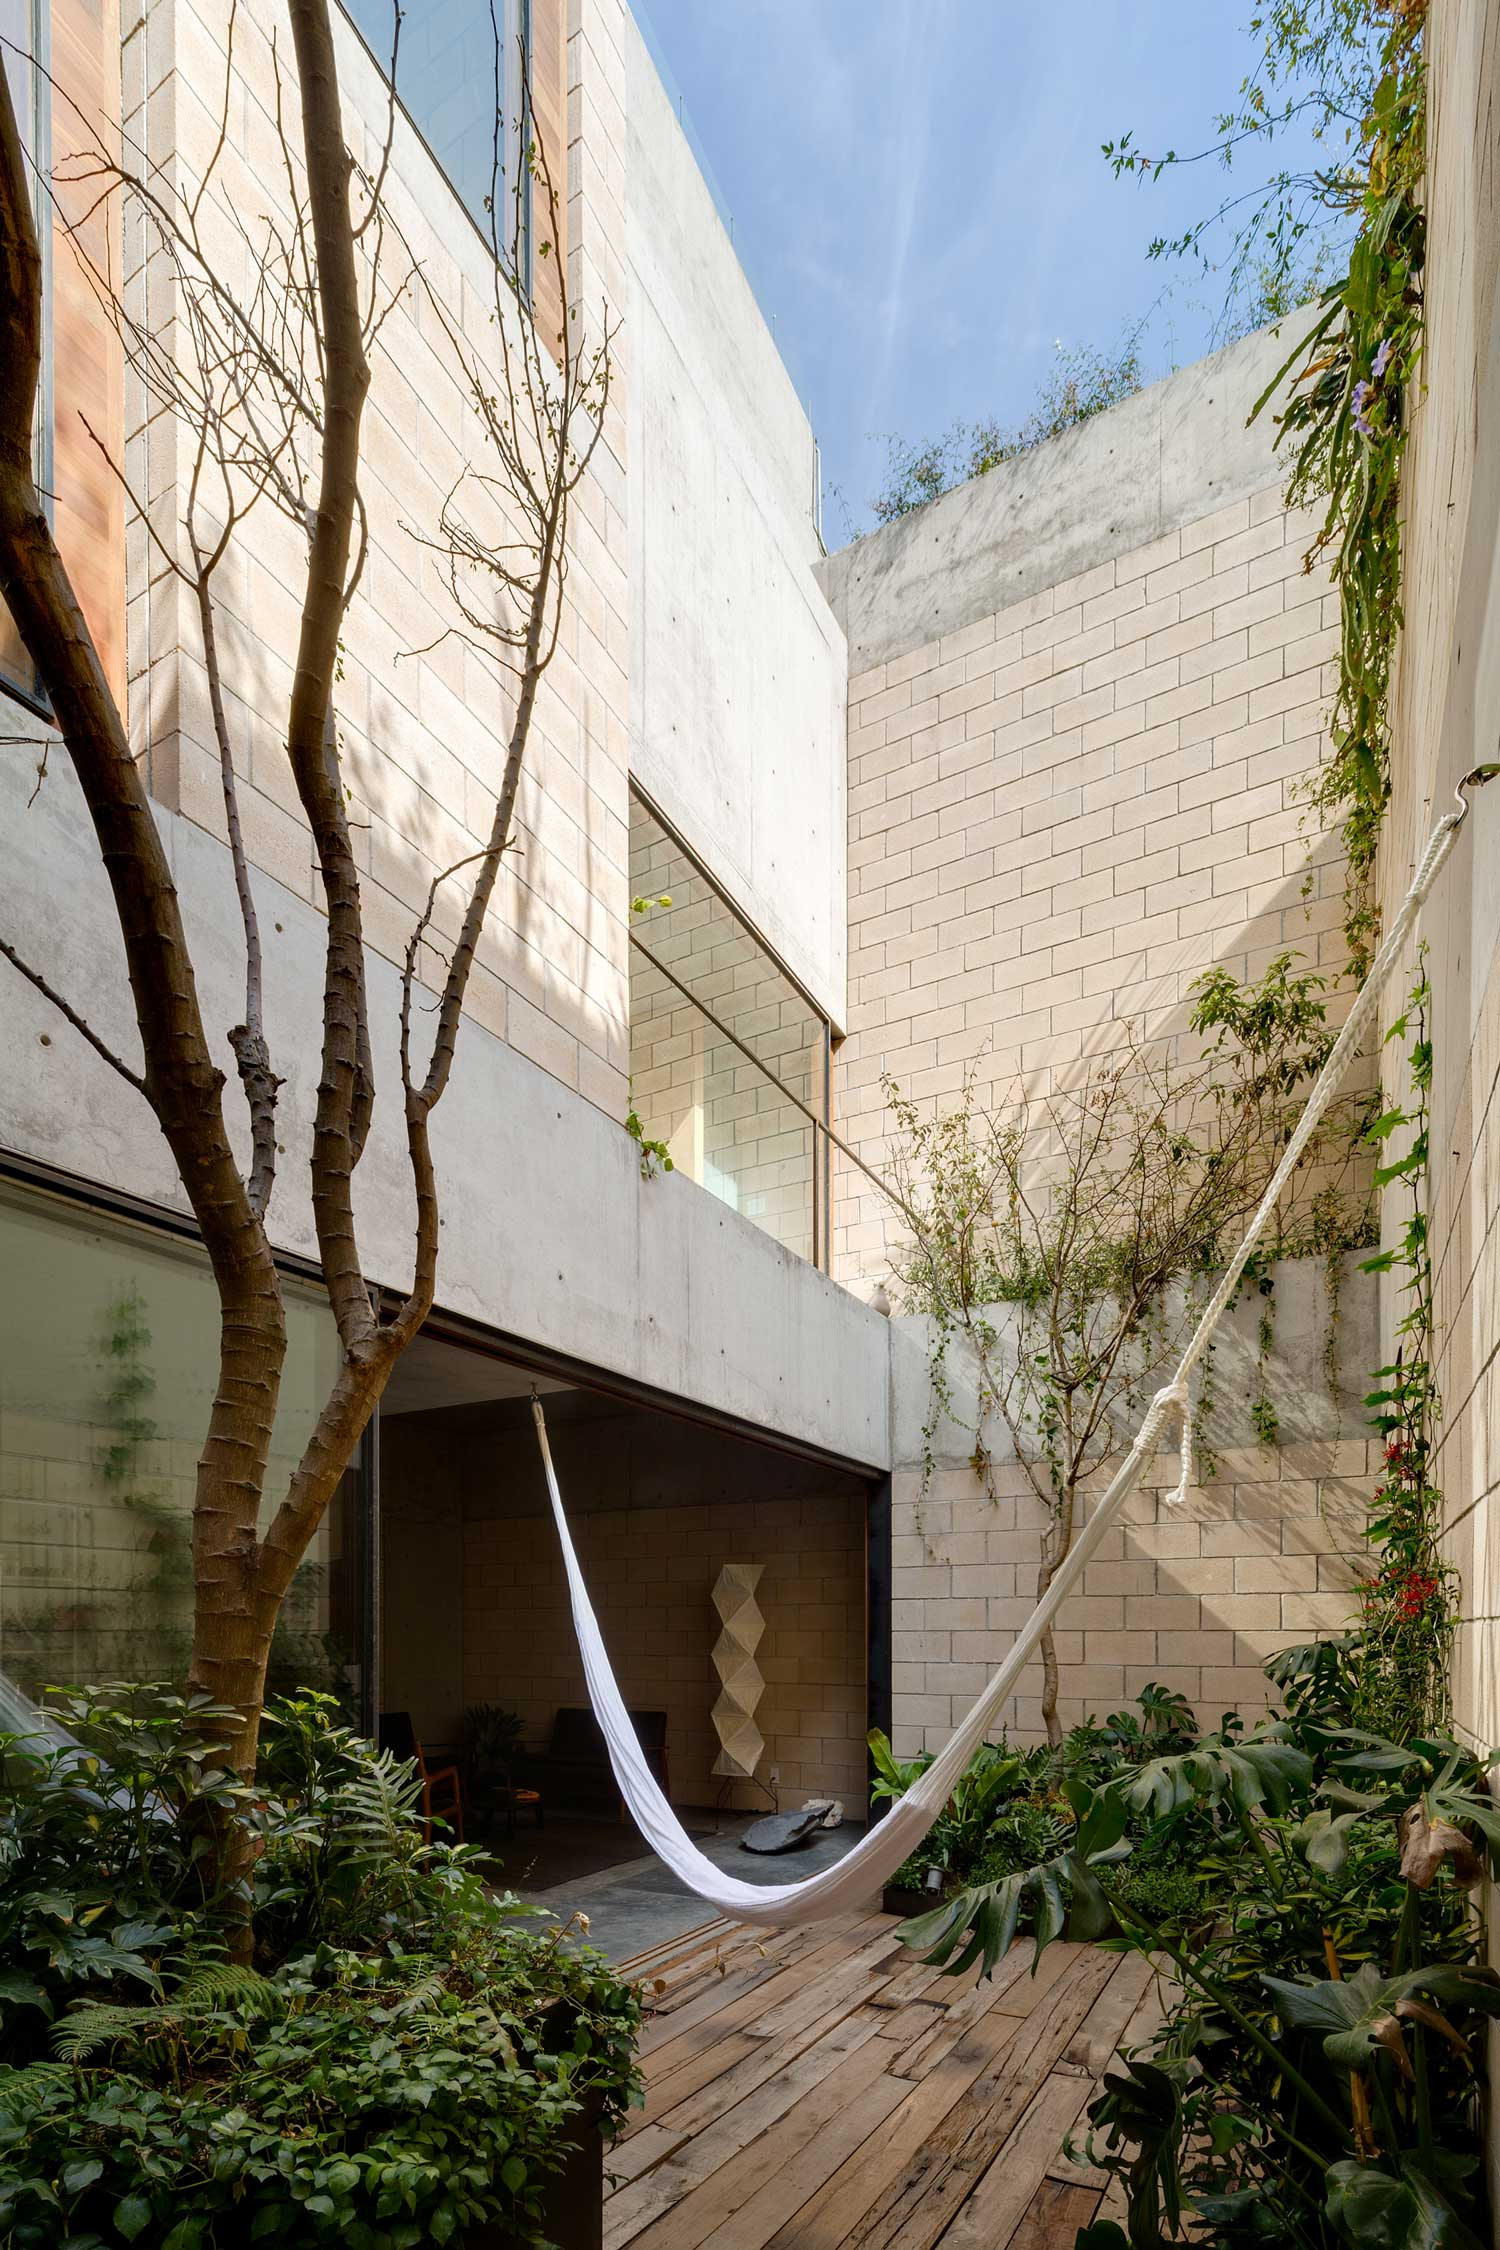 AS Building Mexico City by Ambrosi Etchegaray | Yellowtrace